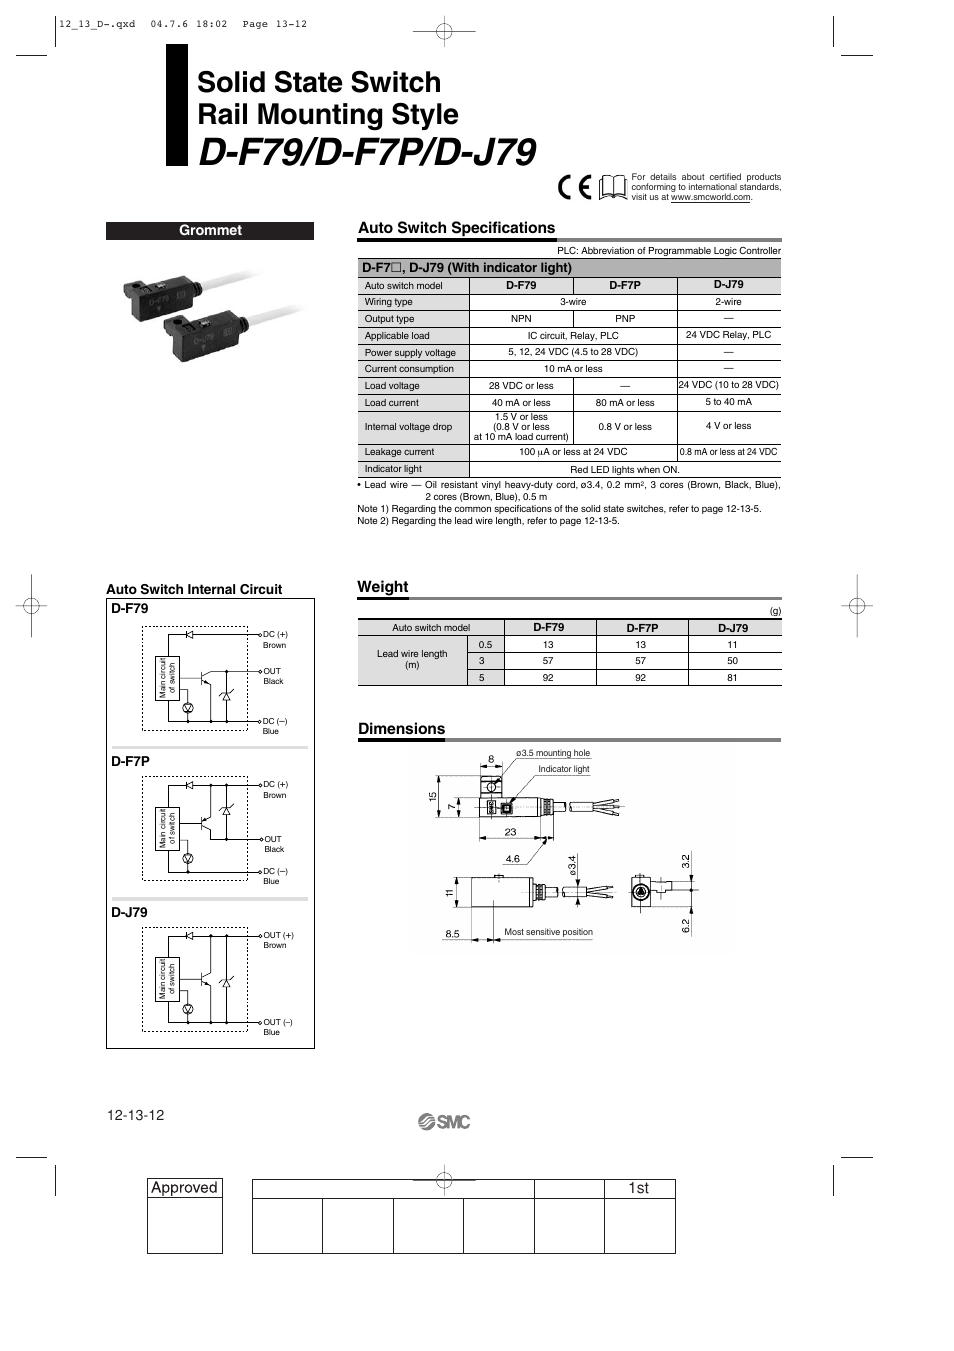 Solid state switch, General purpose type, D-f79/d-f7p/d-j79 rail mounting  style | SMC Networks Reed Switch Solid State Switches User Manual | Page 12  / 27